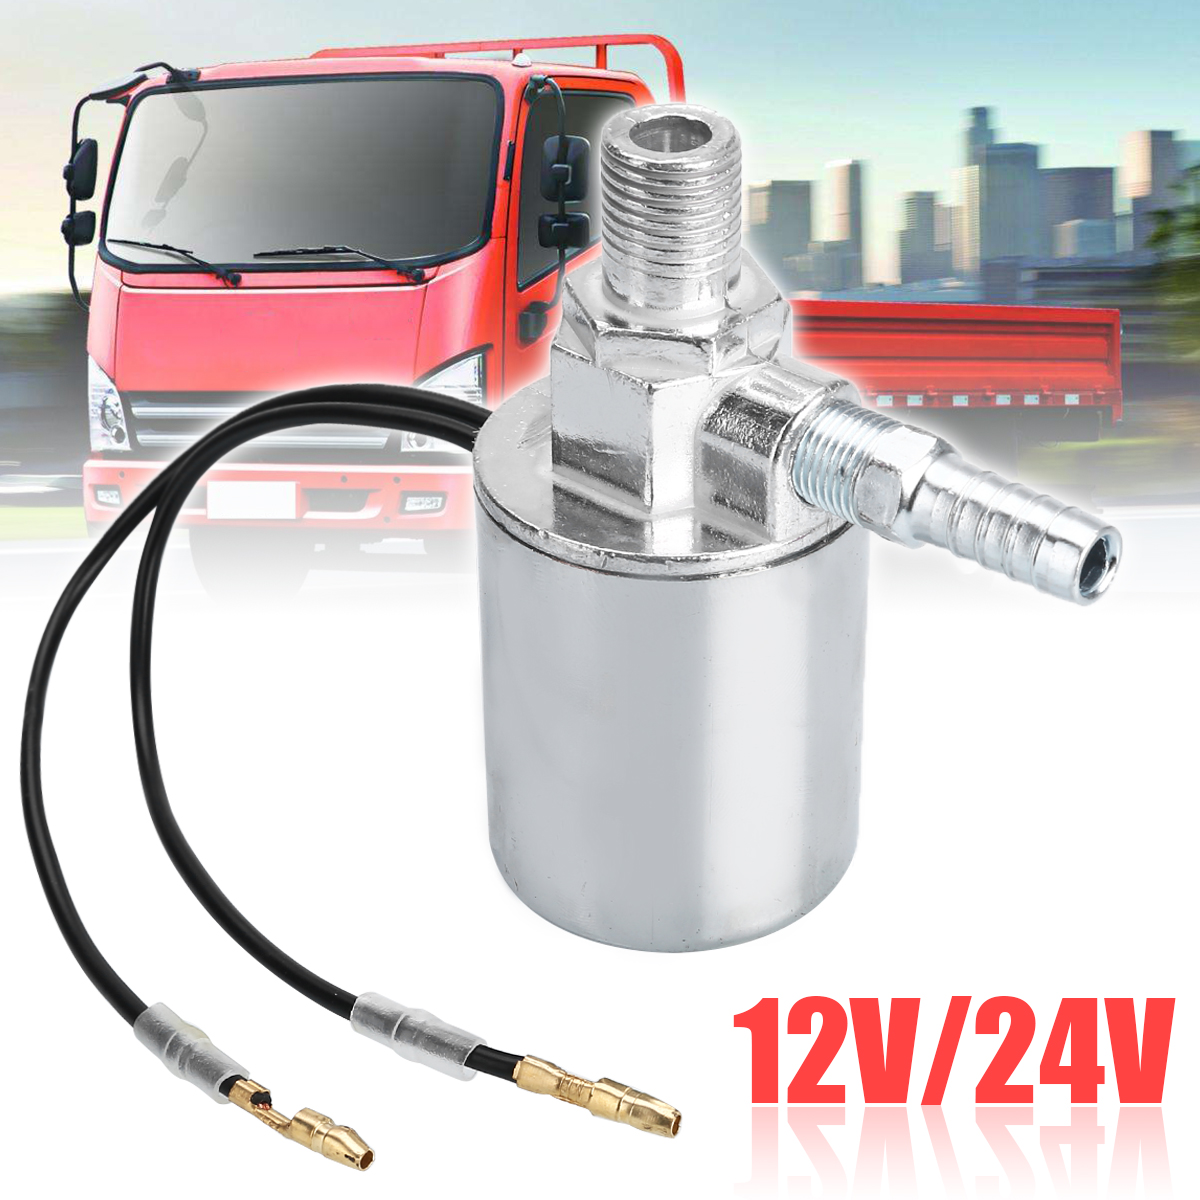 Air Horns Air Ride Systems Eurobuy 12V 1//4inch Metal Train Truck Air Horn Electric Solenoid Valve